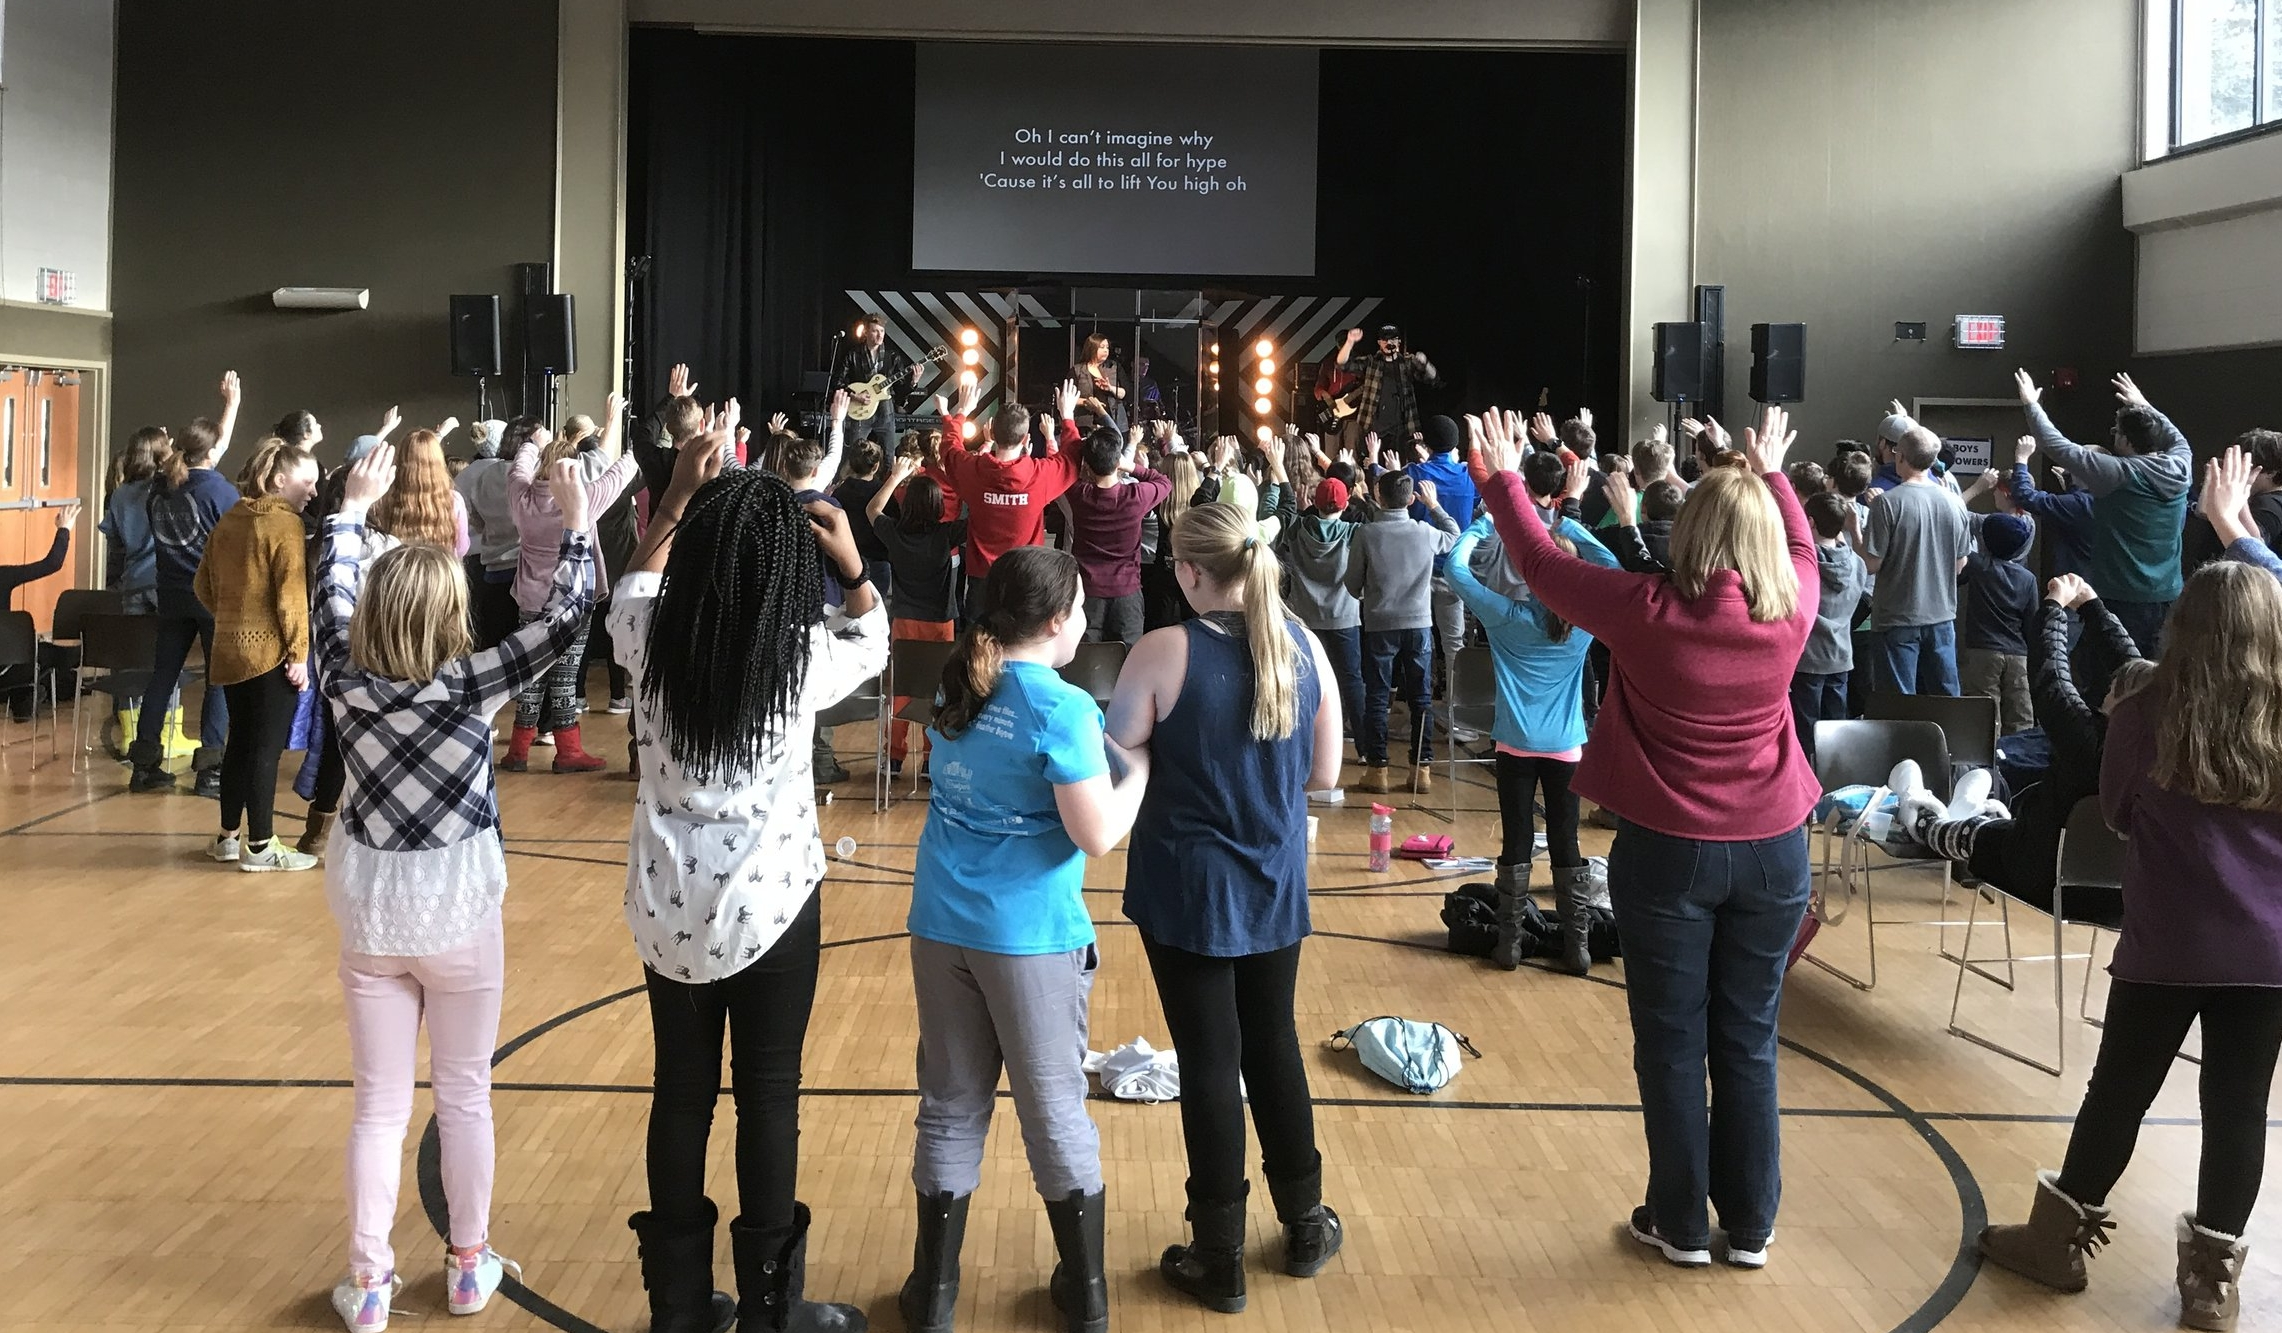 Pretty cool to see students all over the gym lifting their hands in worship!